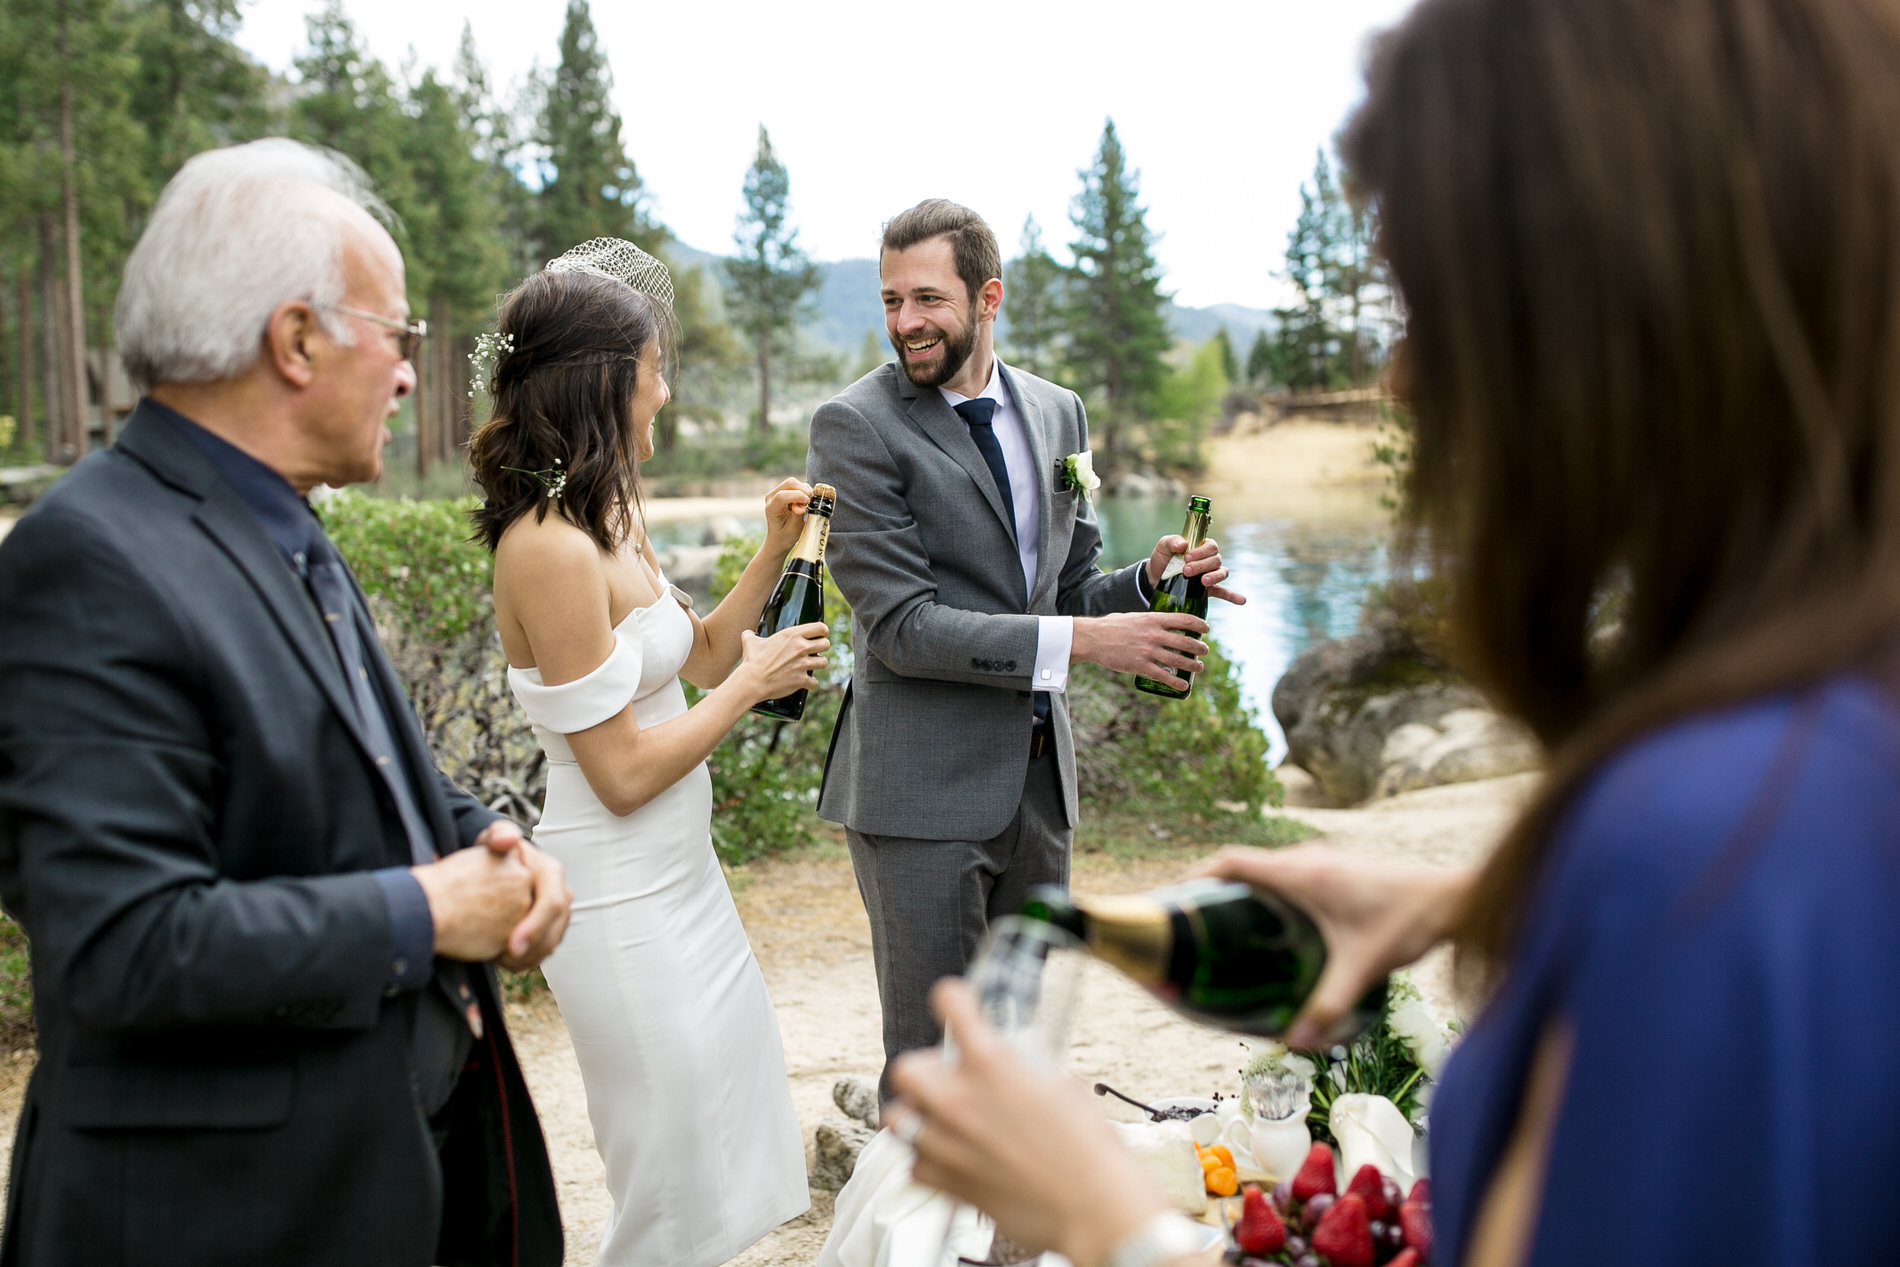 Sand Harbor State Park, Nevada Elopement Ceremony Image | The groom and his brother prepared a small table of hors d'oeuvres and champagne toast to enjoy after the ceremony.